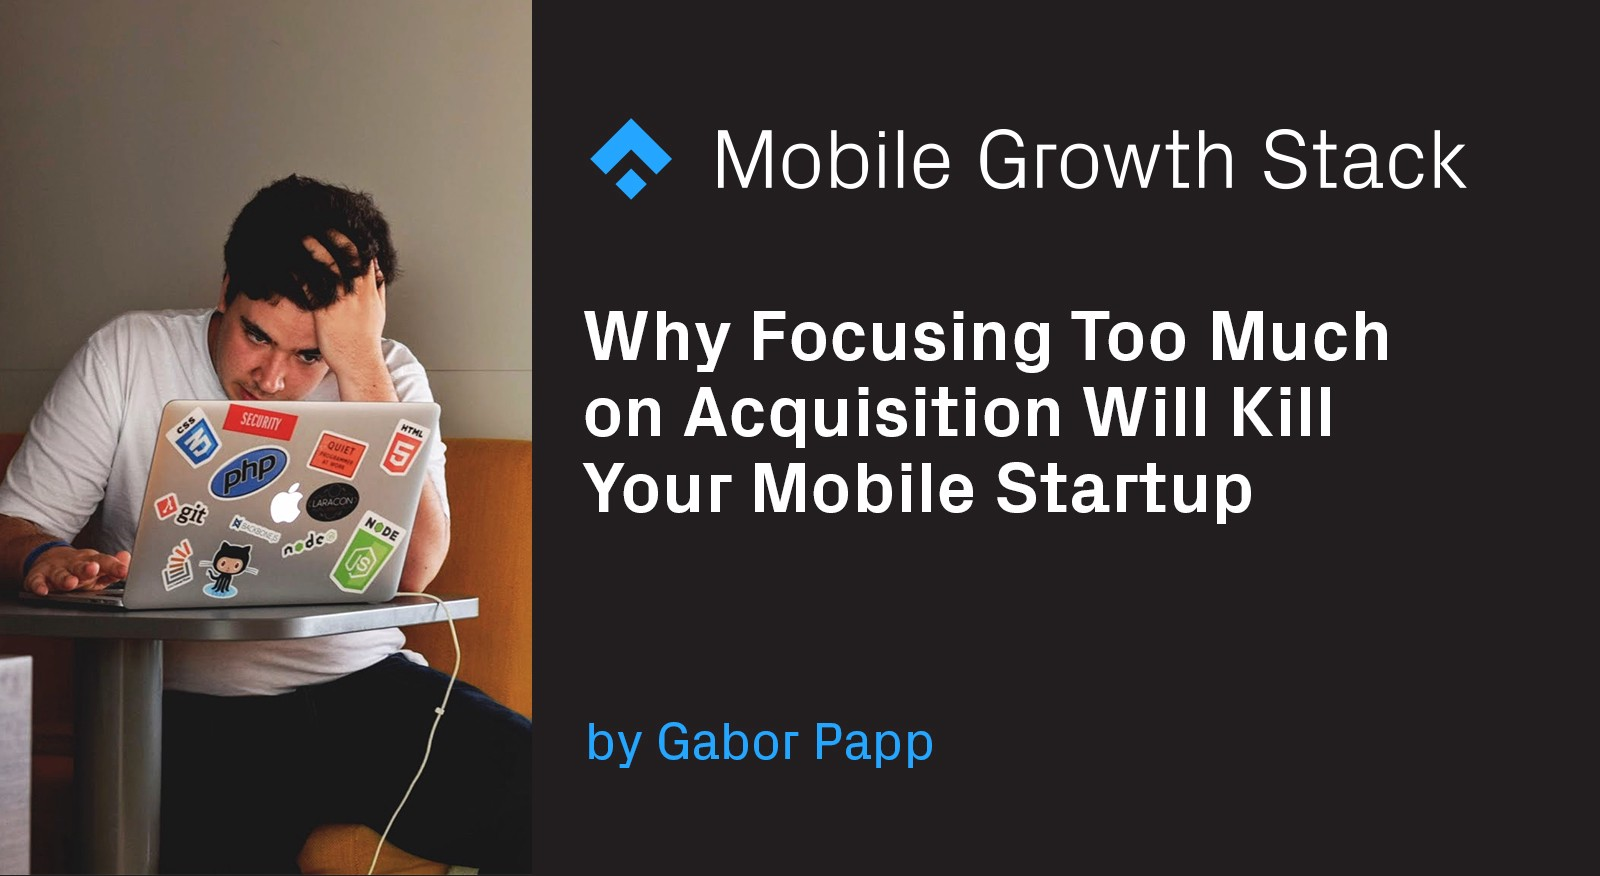 Mobile acquiring and myths about it